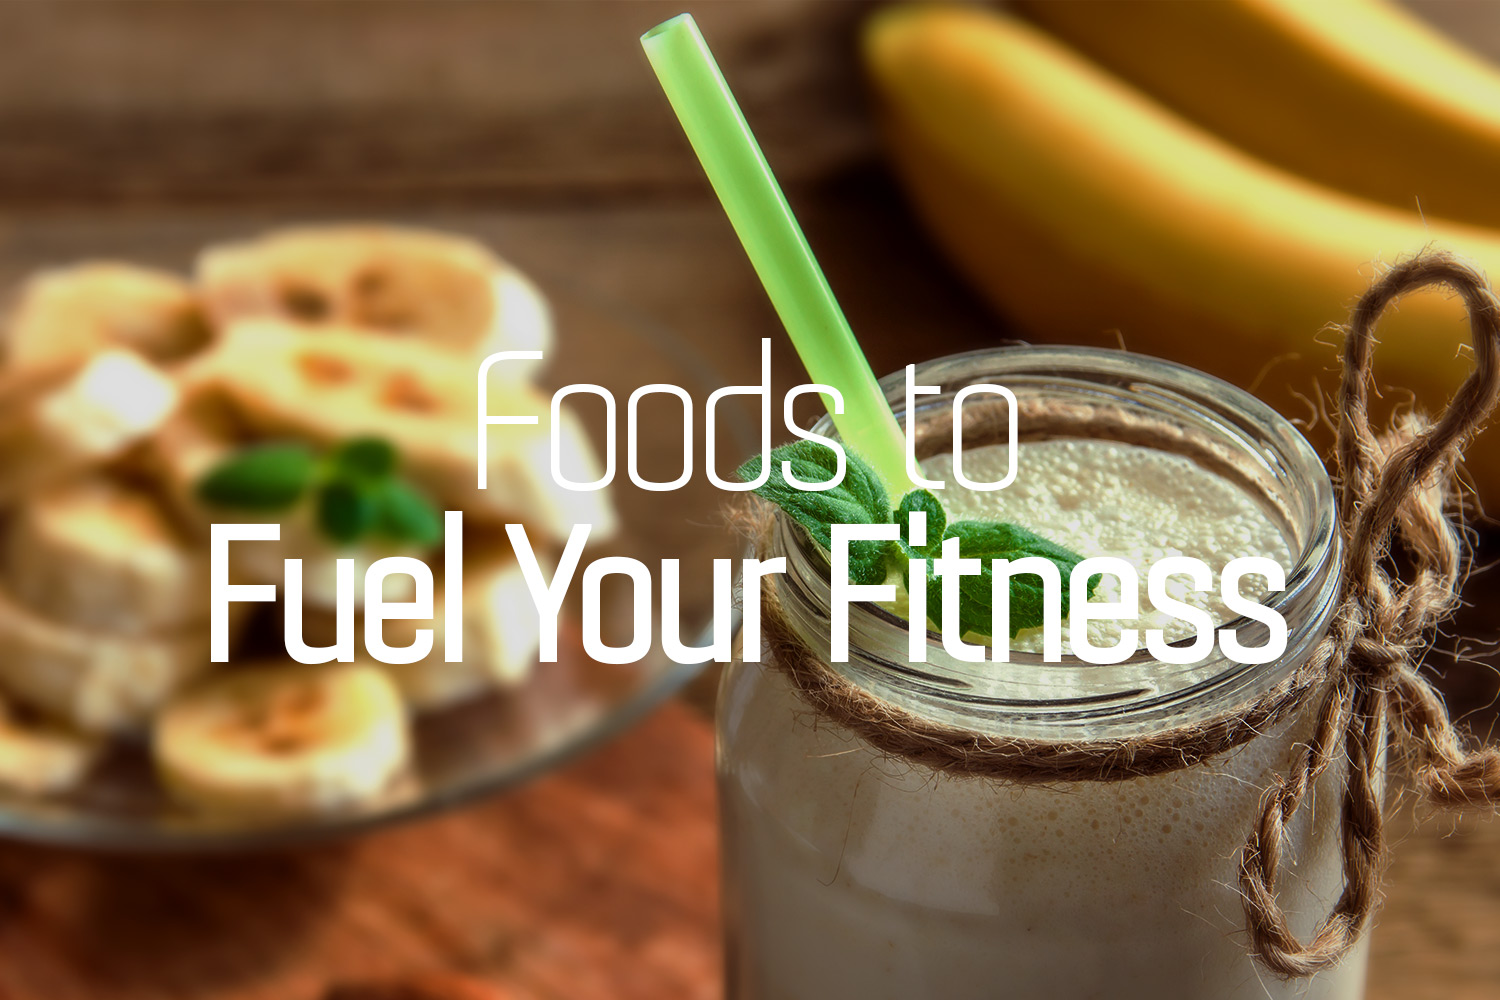 Foods to Fuel Your Fitness